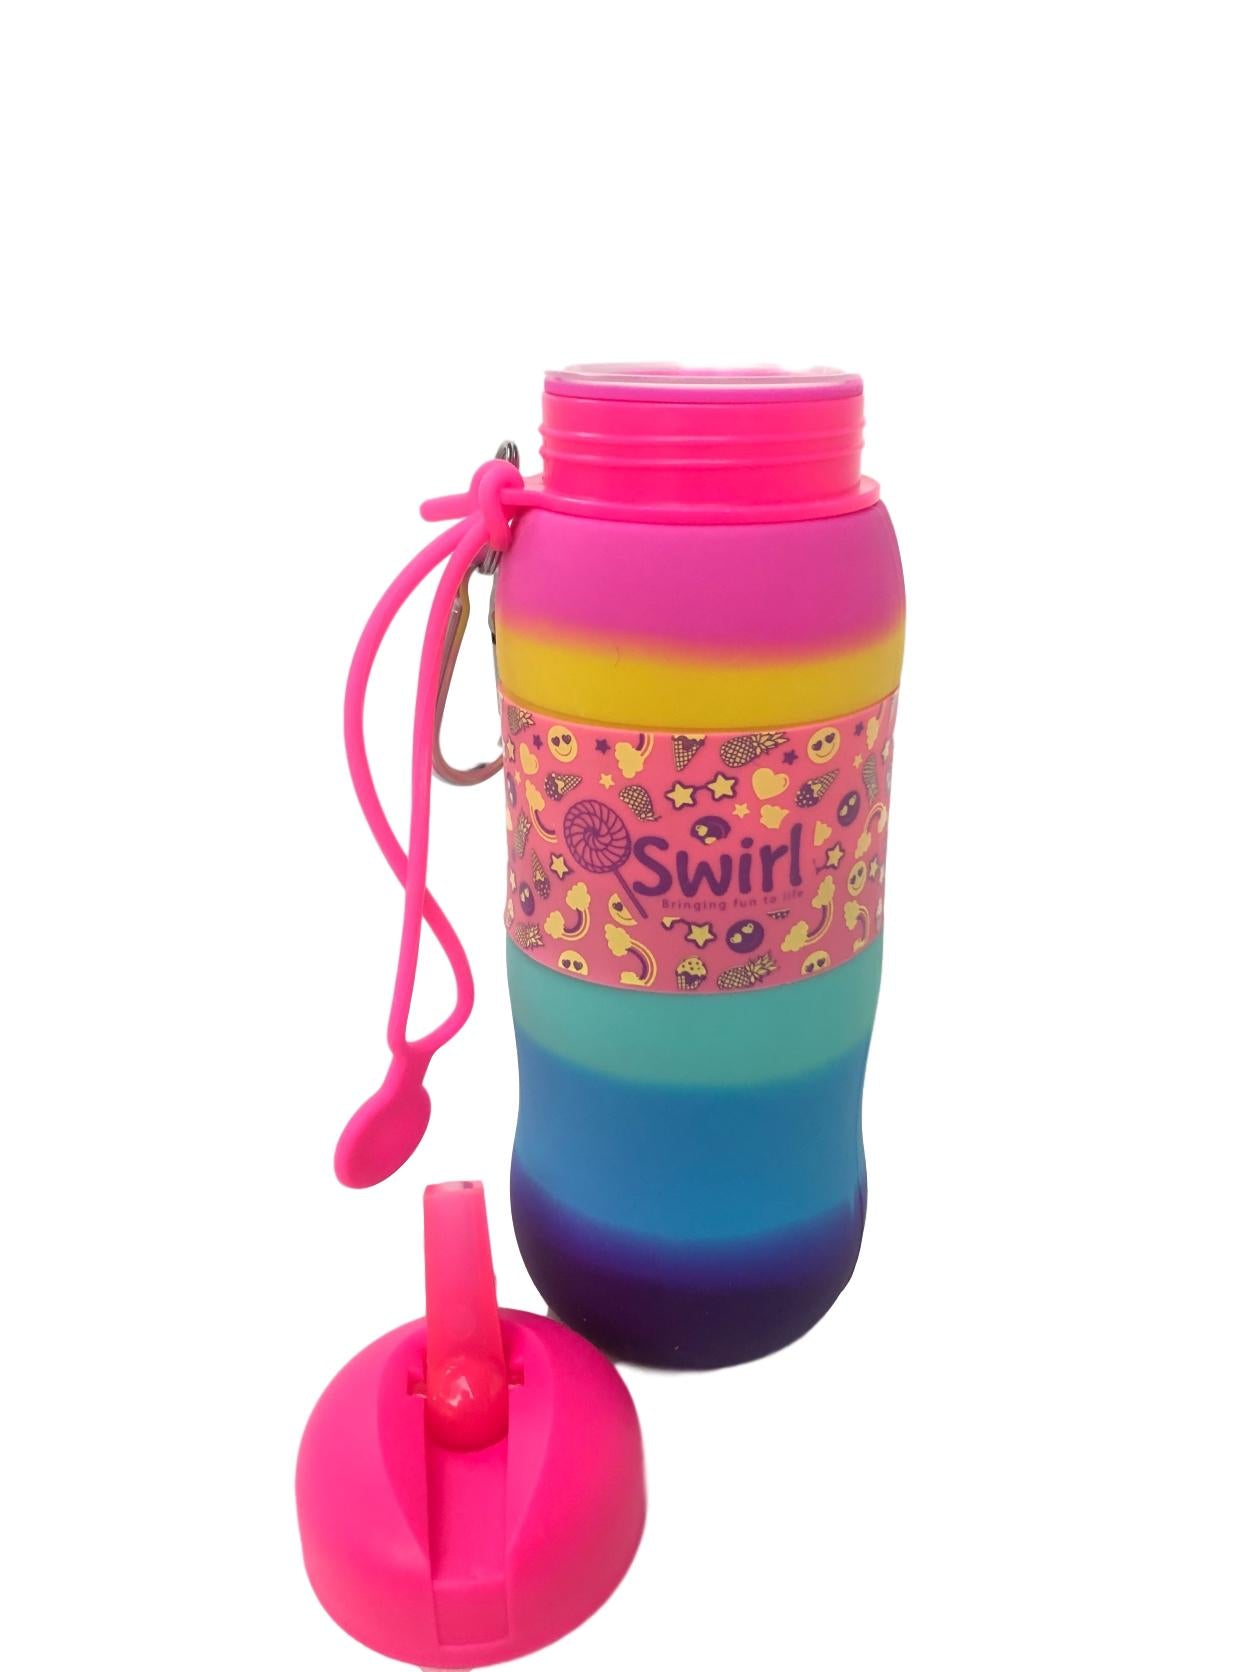 Swirl Pink Emoji Silicone Drink Bottle Back in Stock!